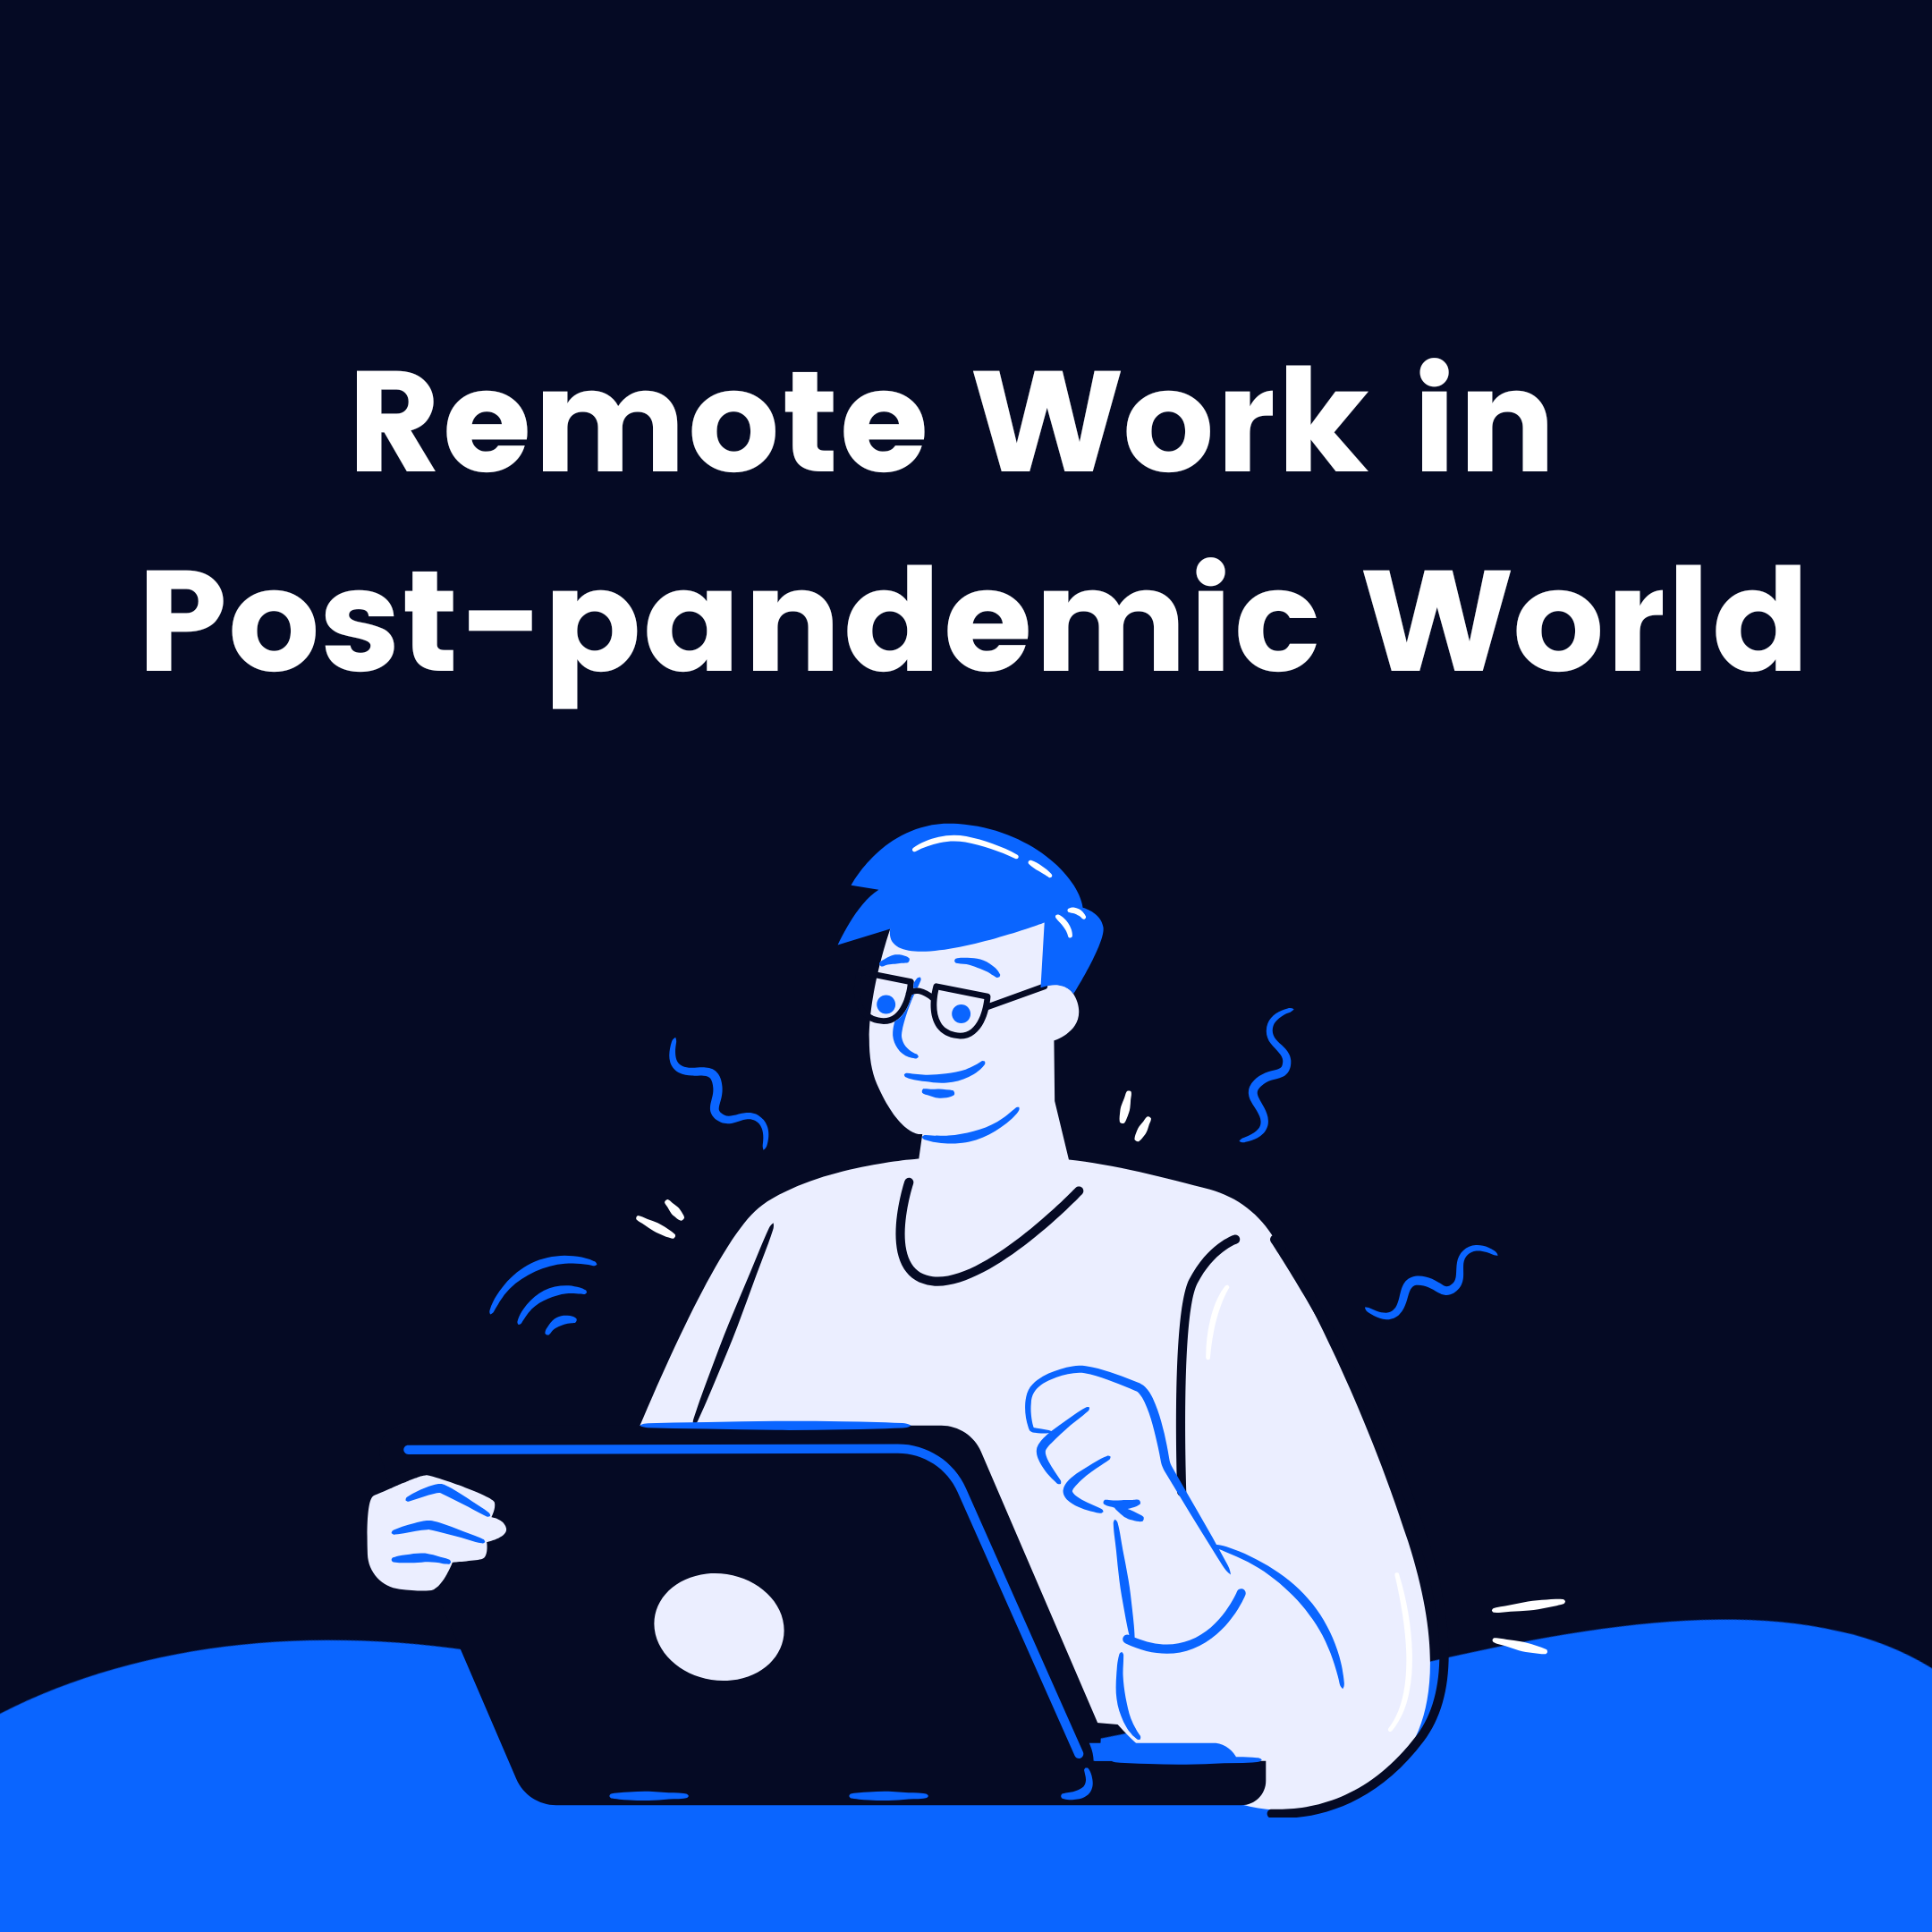 Remote work in post-pandemic world